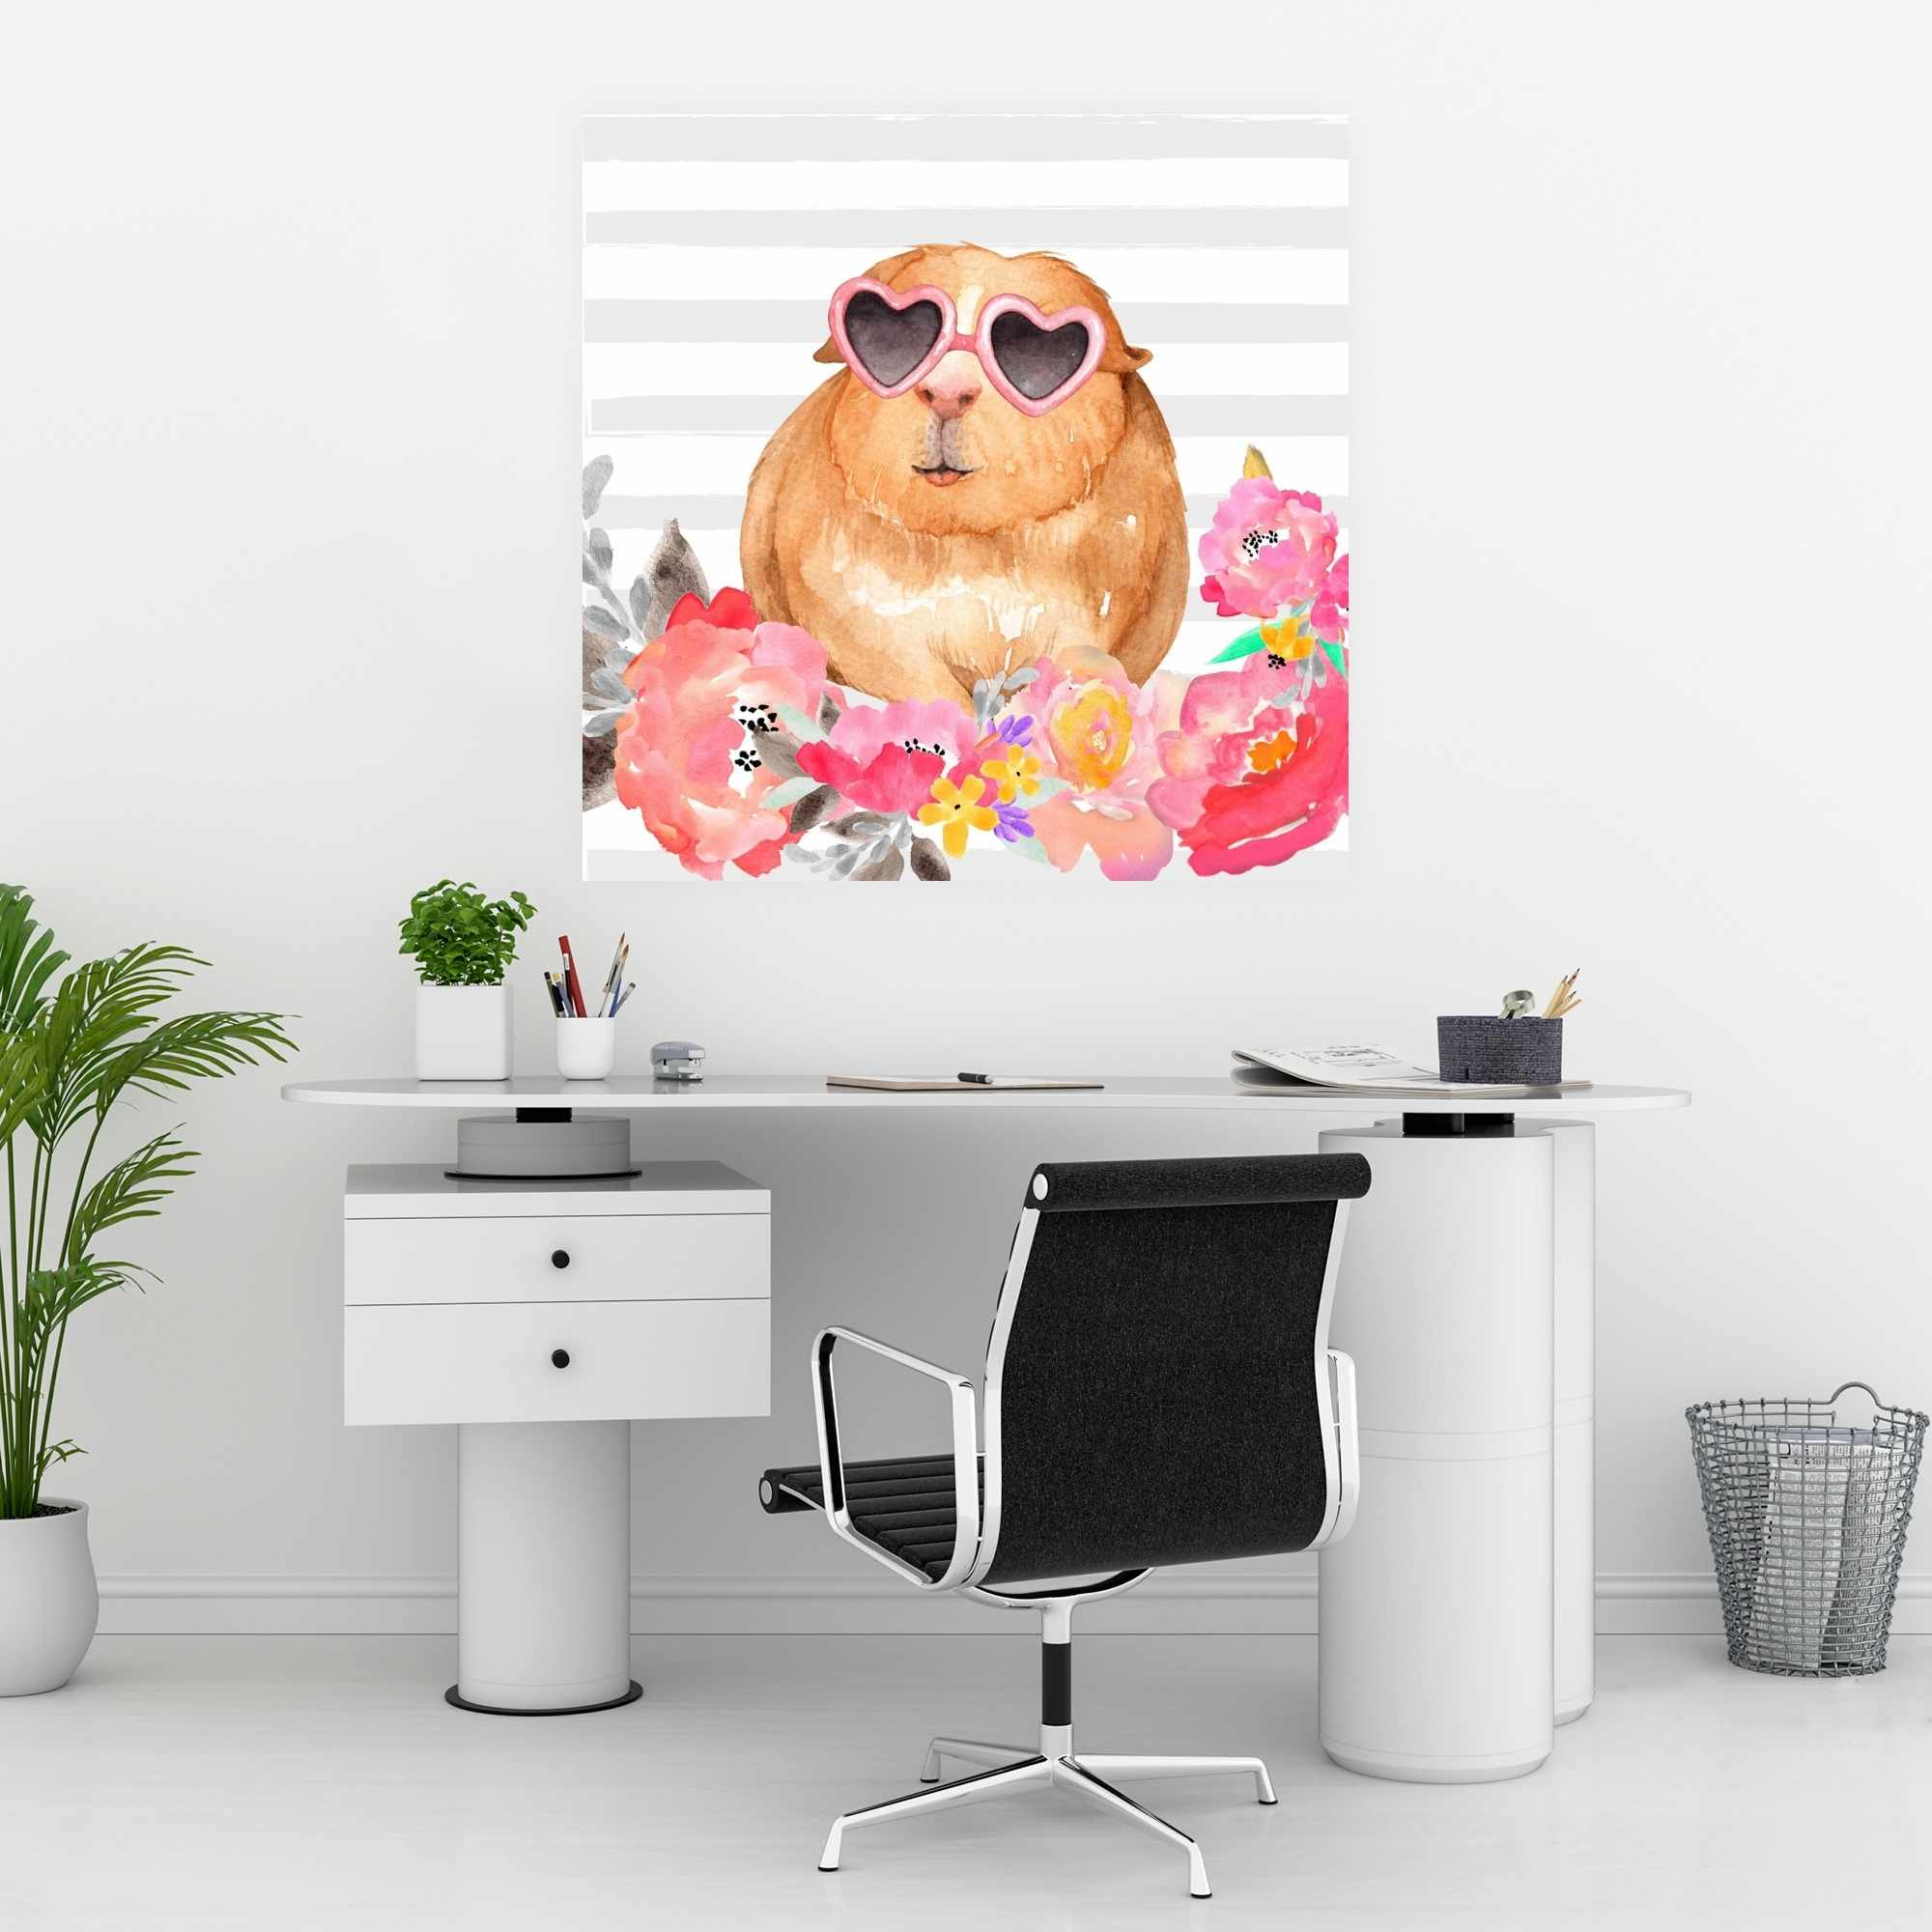 Poster 30 x 30 - Guinea pig with glasses